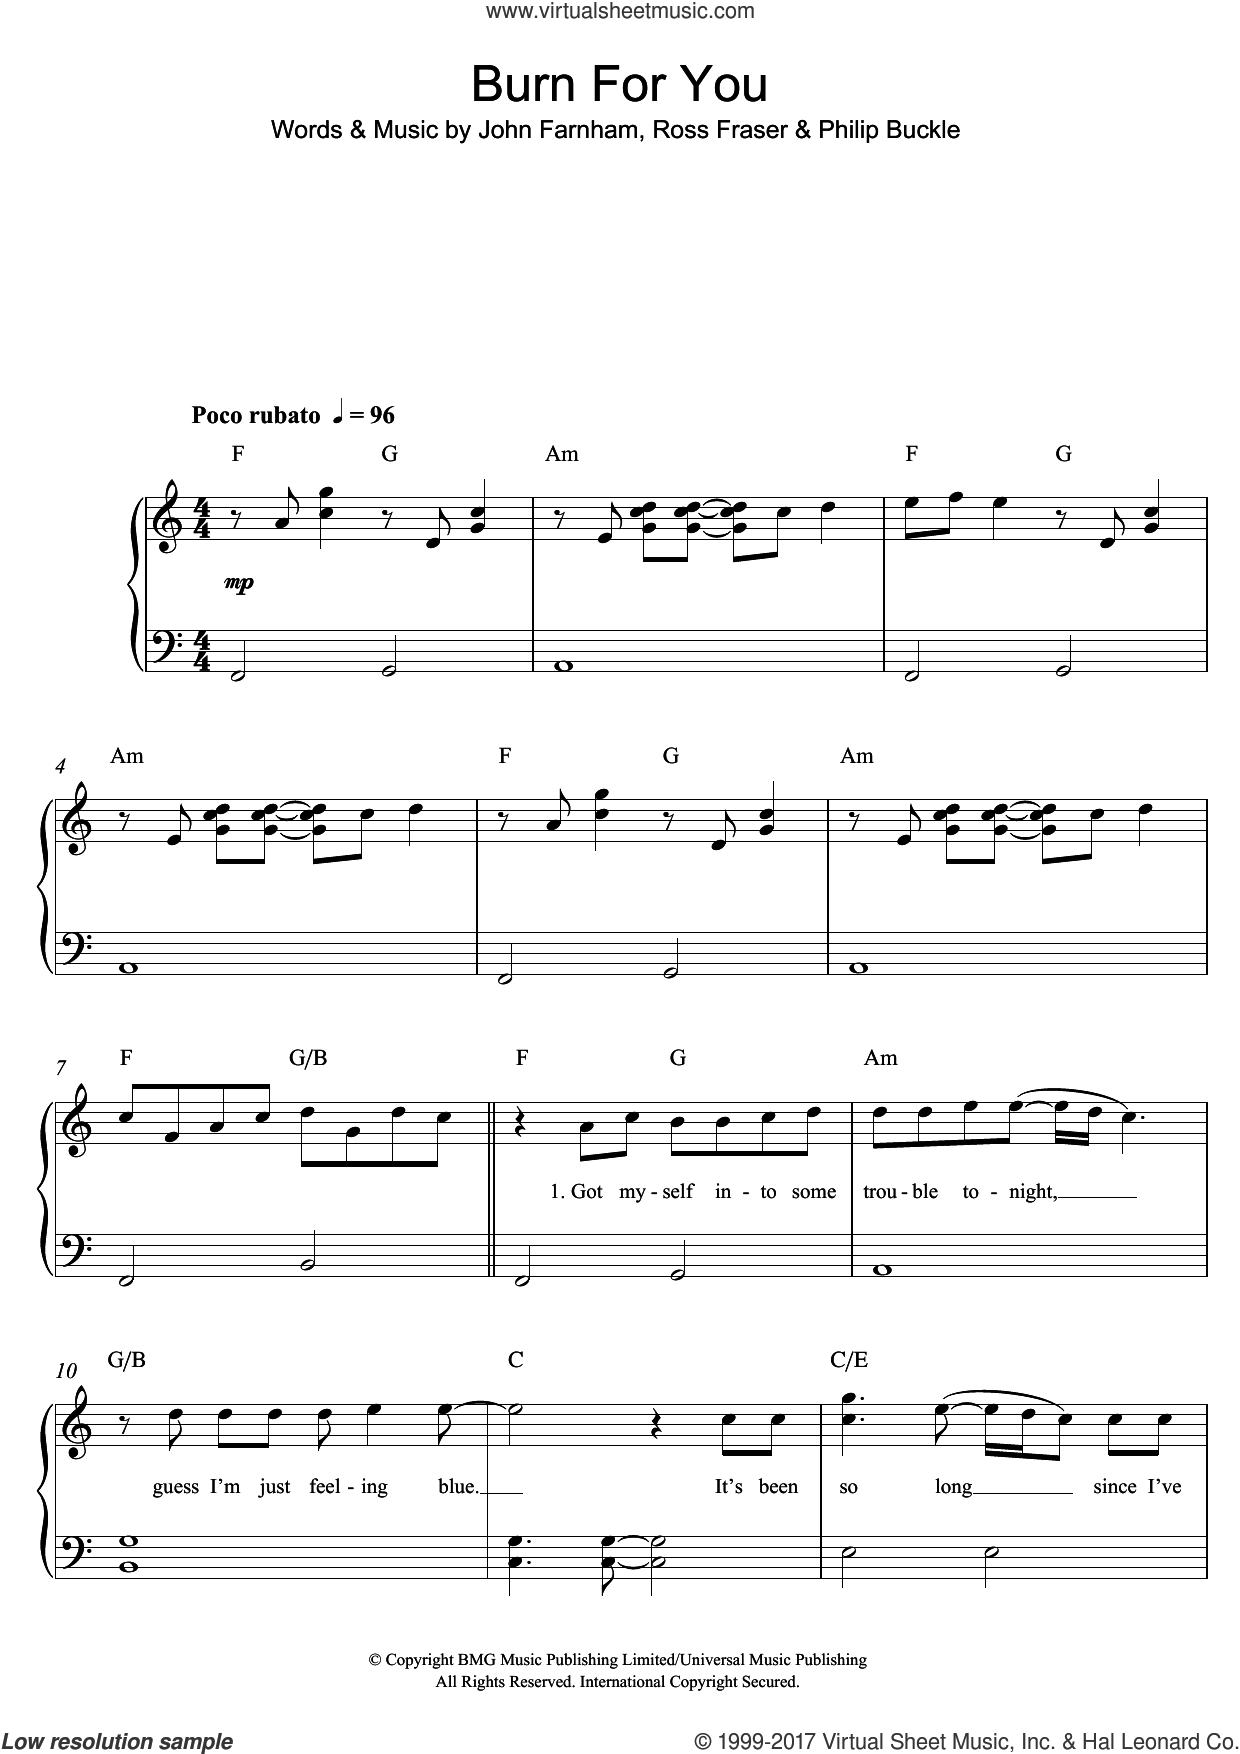 Burn For You sheet music for piano solo by John Farnham. Score Image Preview.